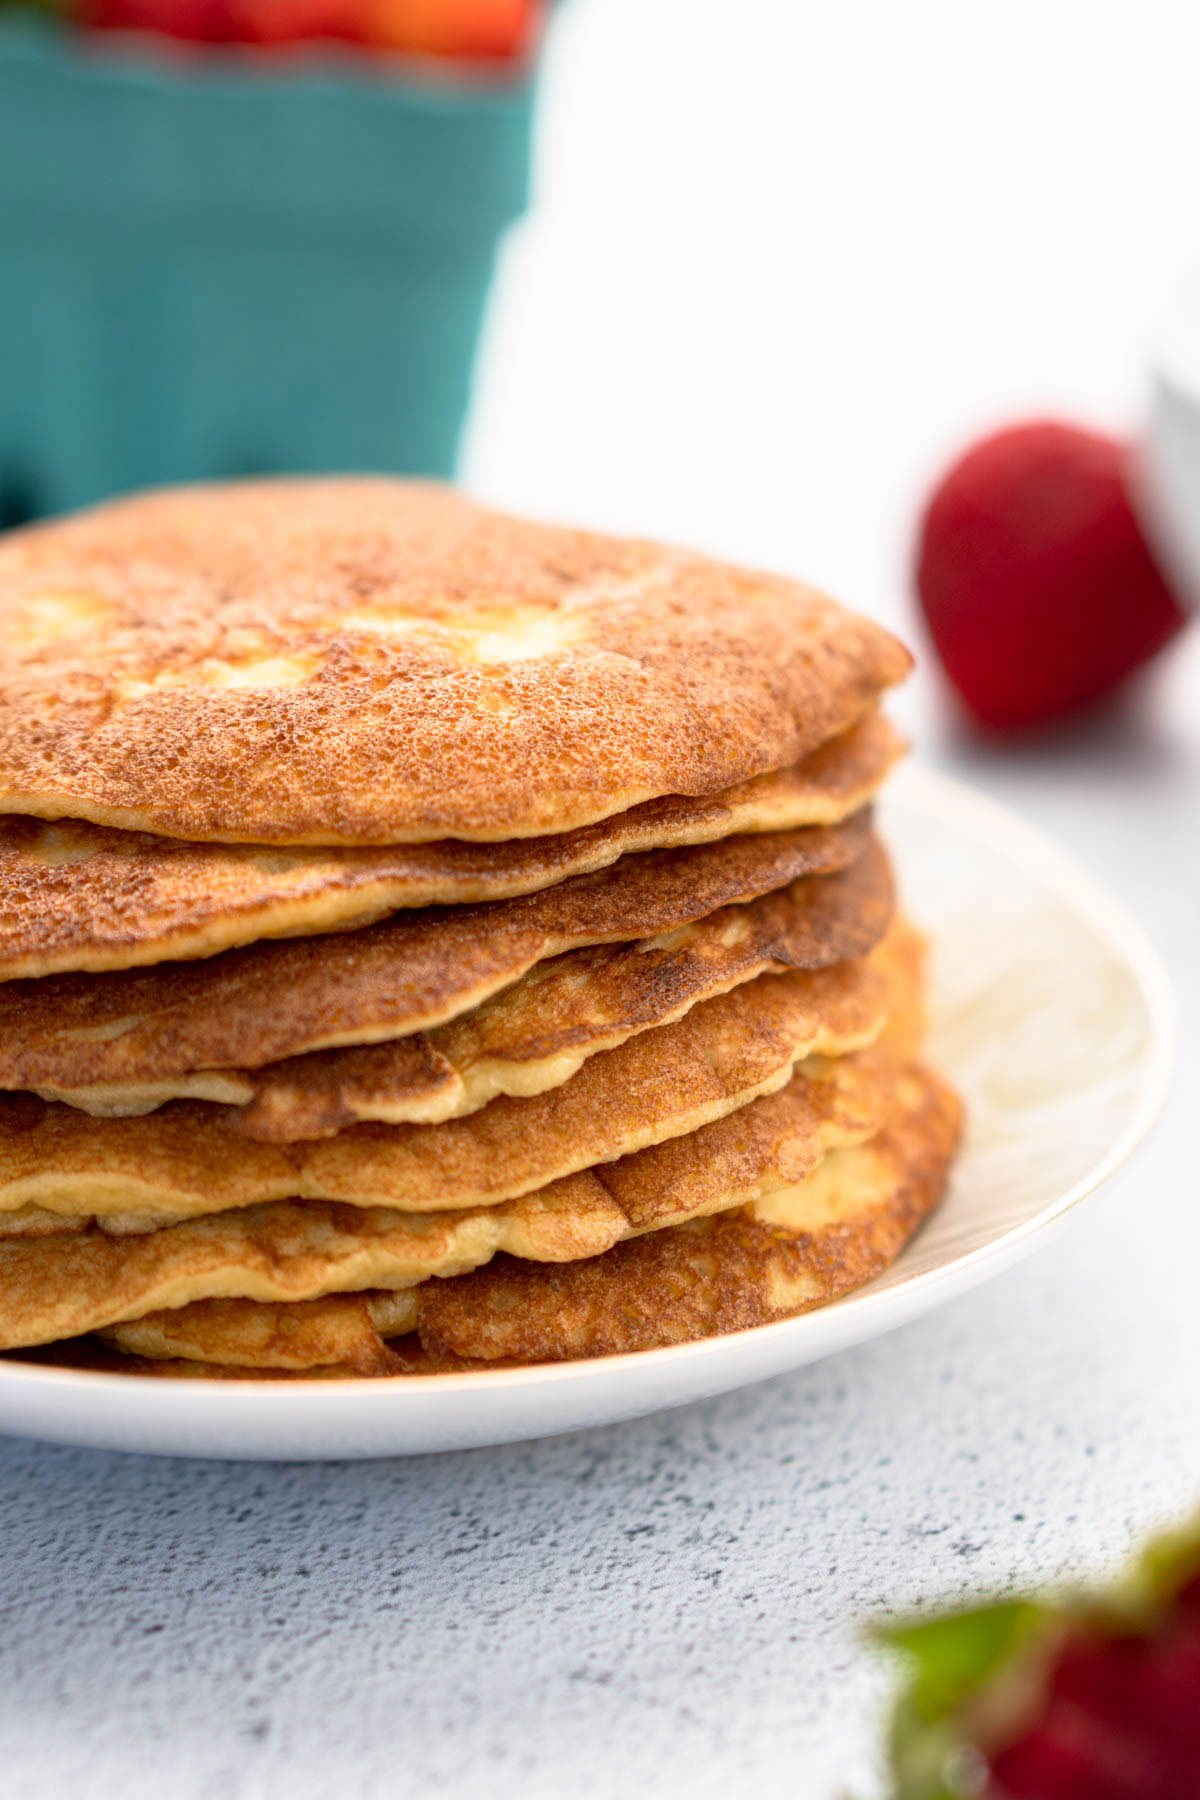 Pancakes stacked on a plate with fruit in the background.